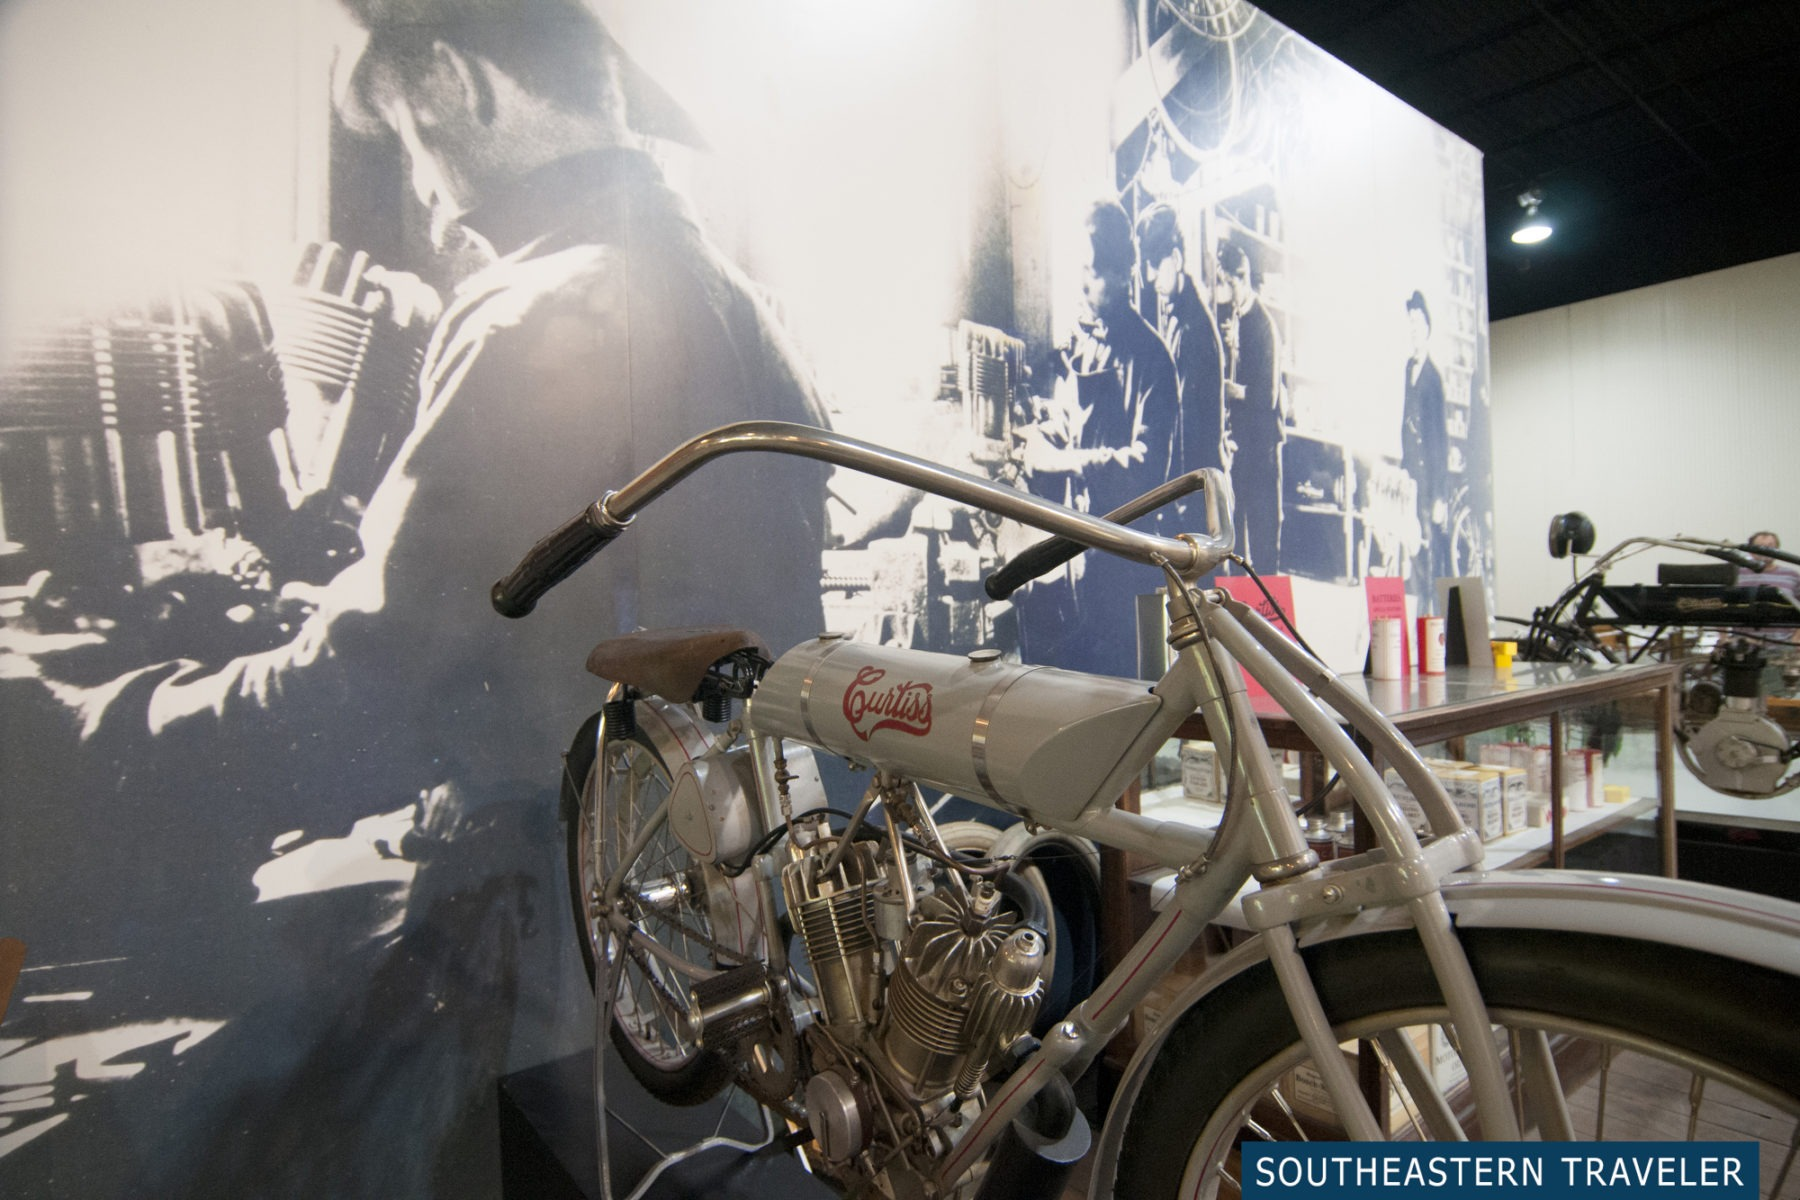 A bicycle on display in the Glenn Curtiss Aviation Museum in Hammondsport, New York